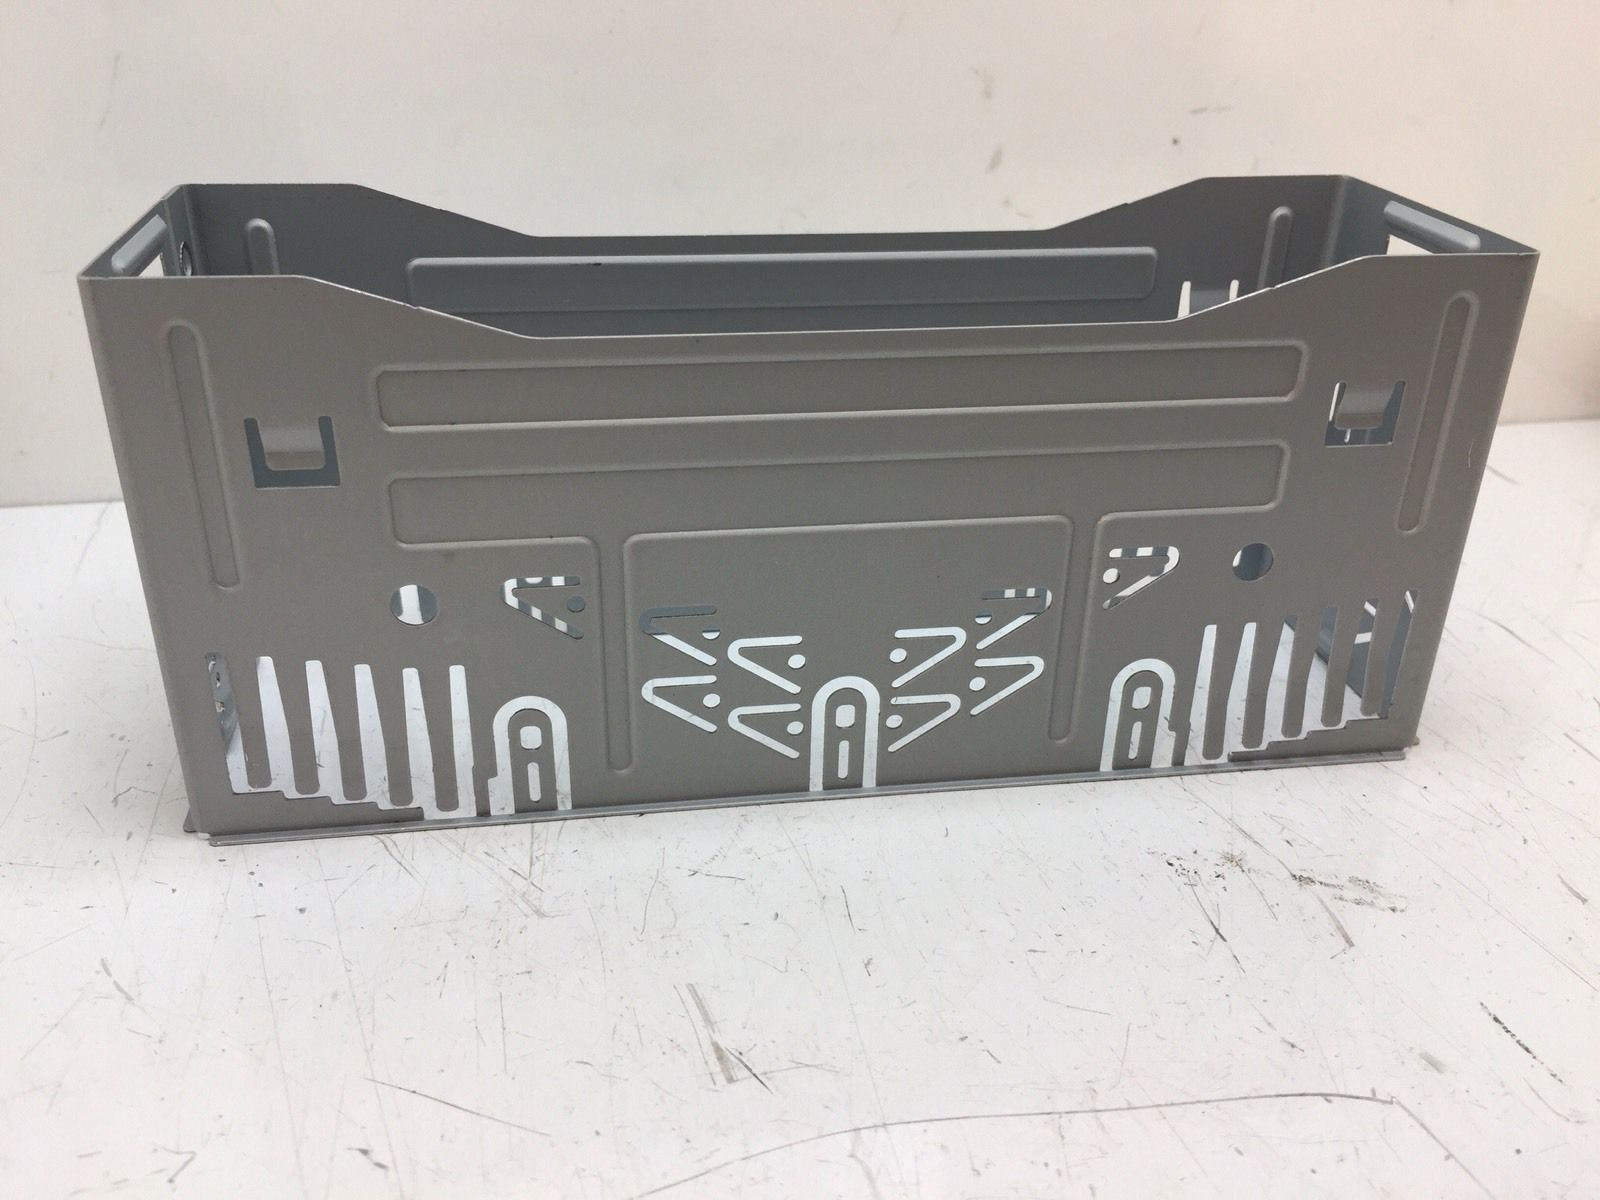 Alpine Car Radio Stereo 2012 Onwards Mounting Cage Sleeve Insert Carrier Ute Etc